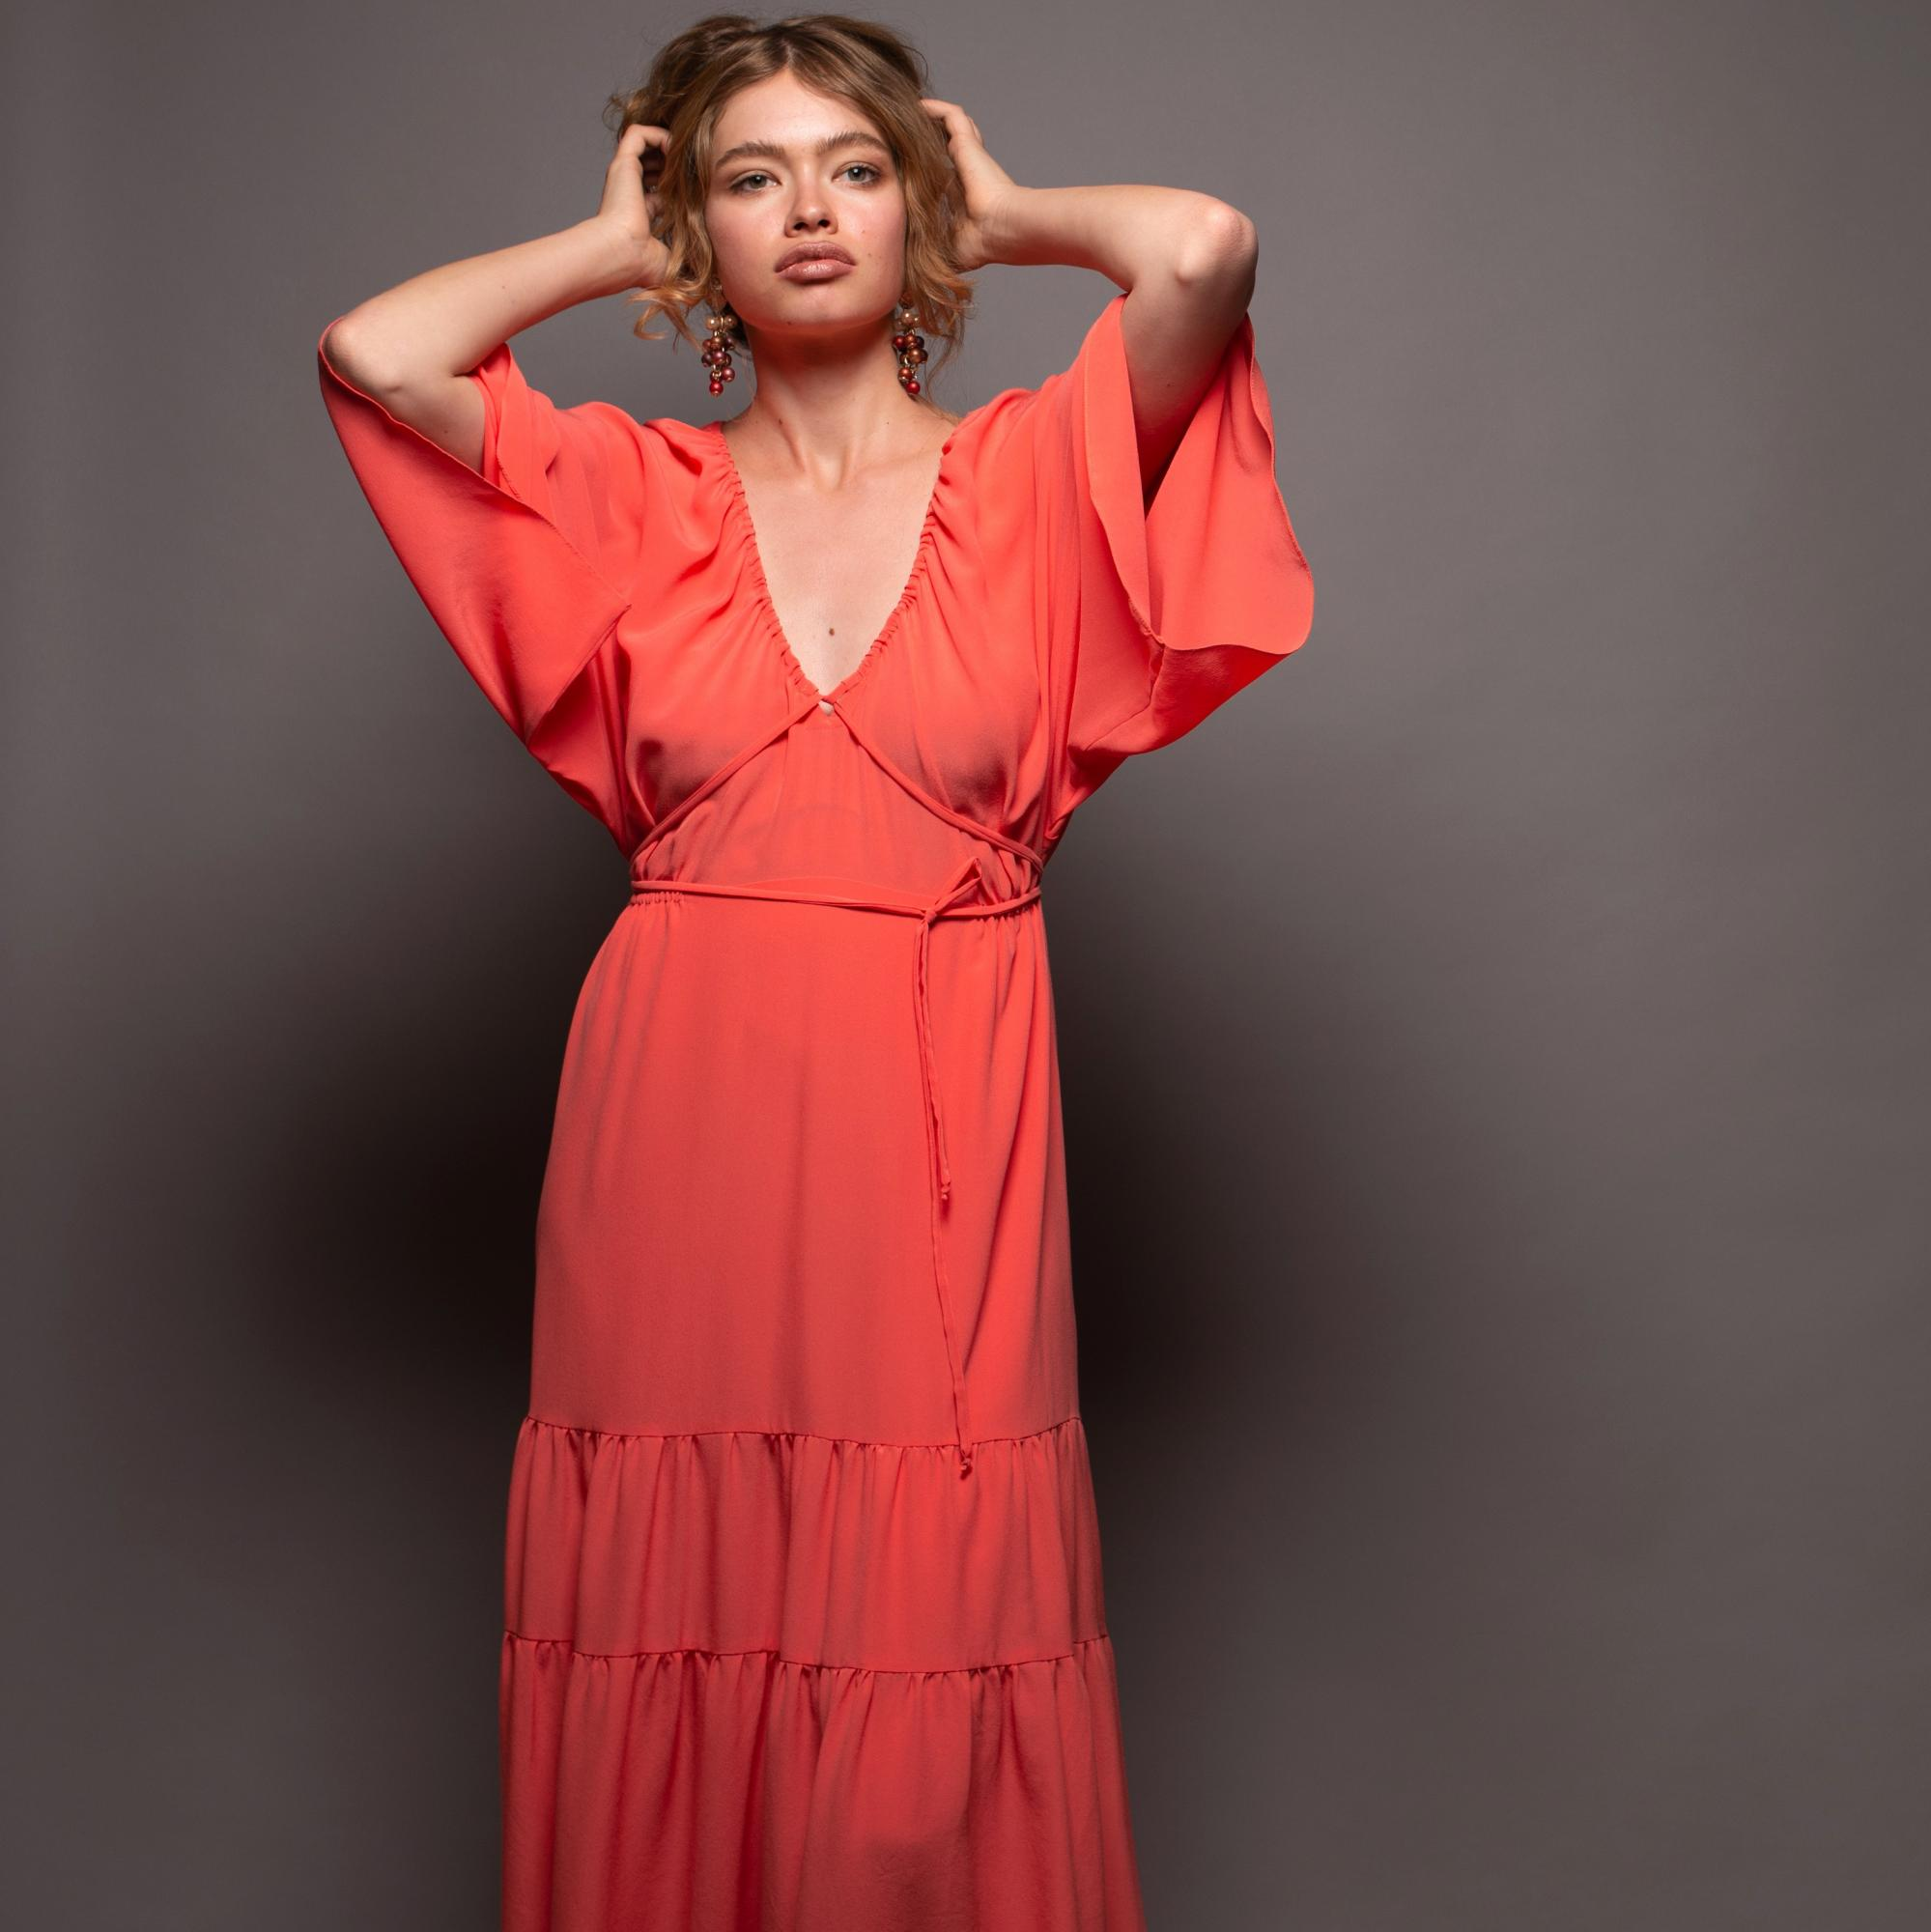 Stefanie Savary - sustainable luxury dresses, silk maxi coral dress, silk boho maxi dress, luxurious colorful maxi dress